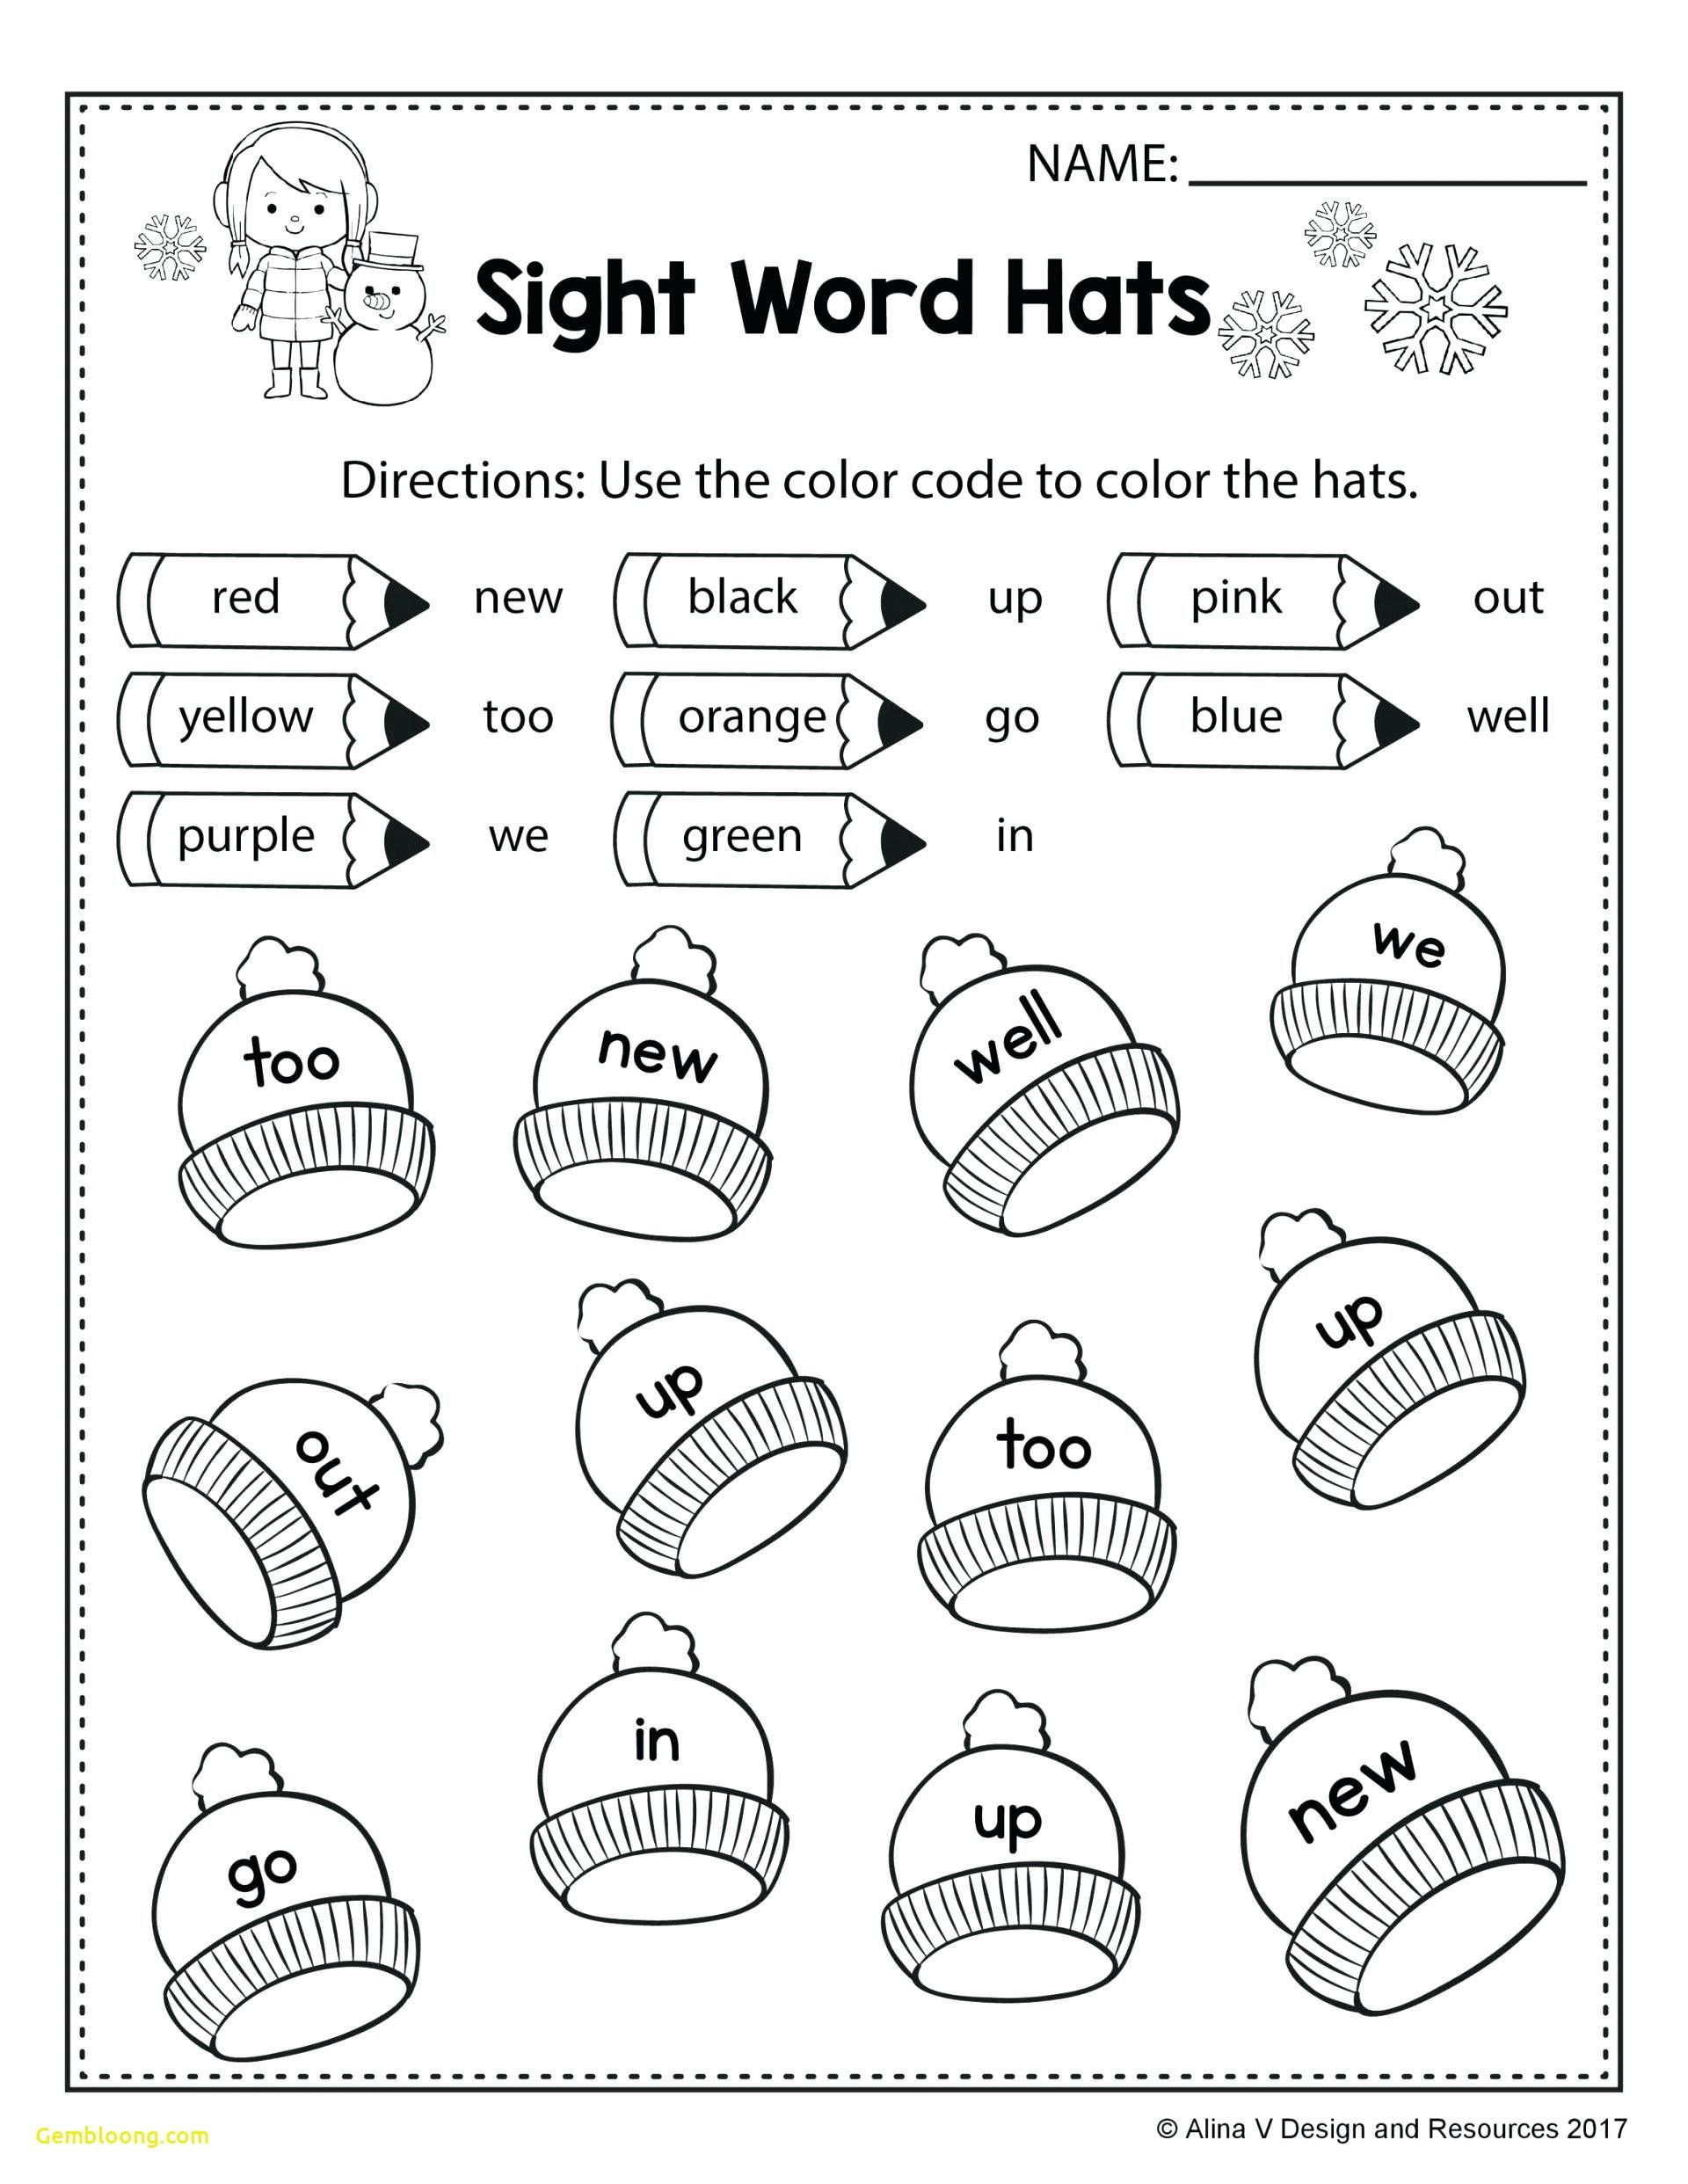 1st Grade Language Arts Worksheets Printable   Printable Worksheets and  Activities for Teachers [ 2484 x 1920 Pixel ]